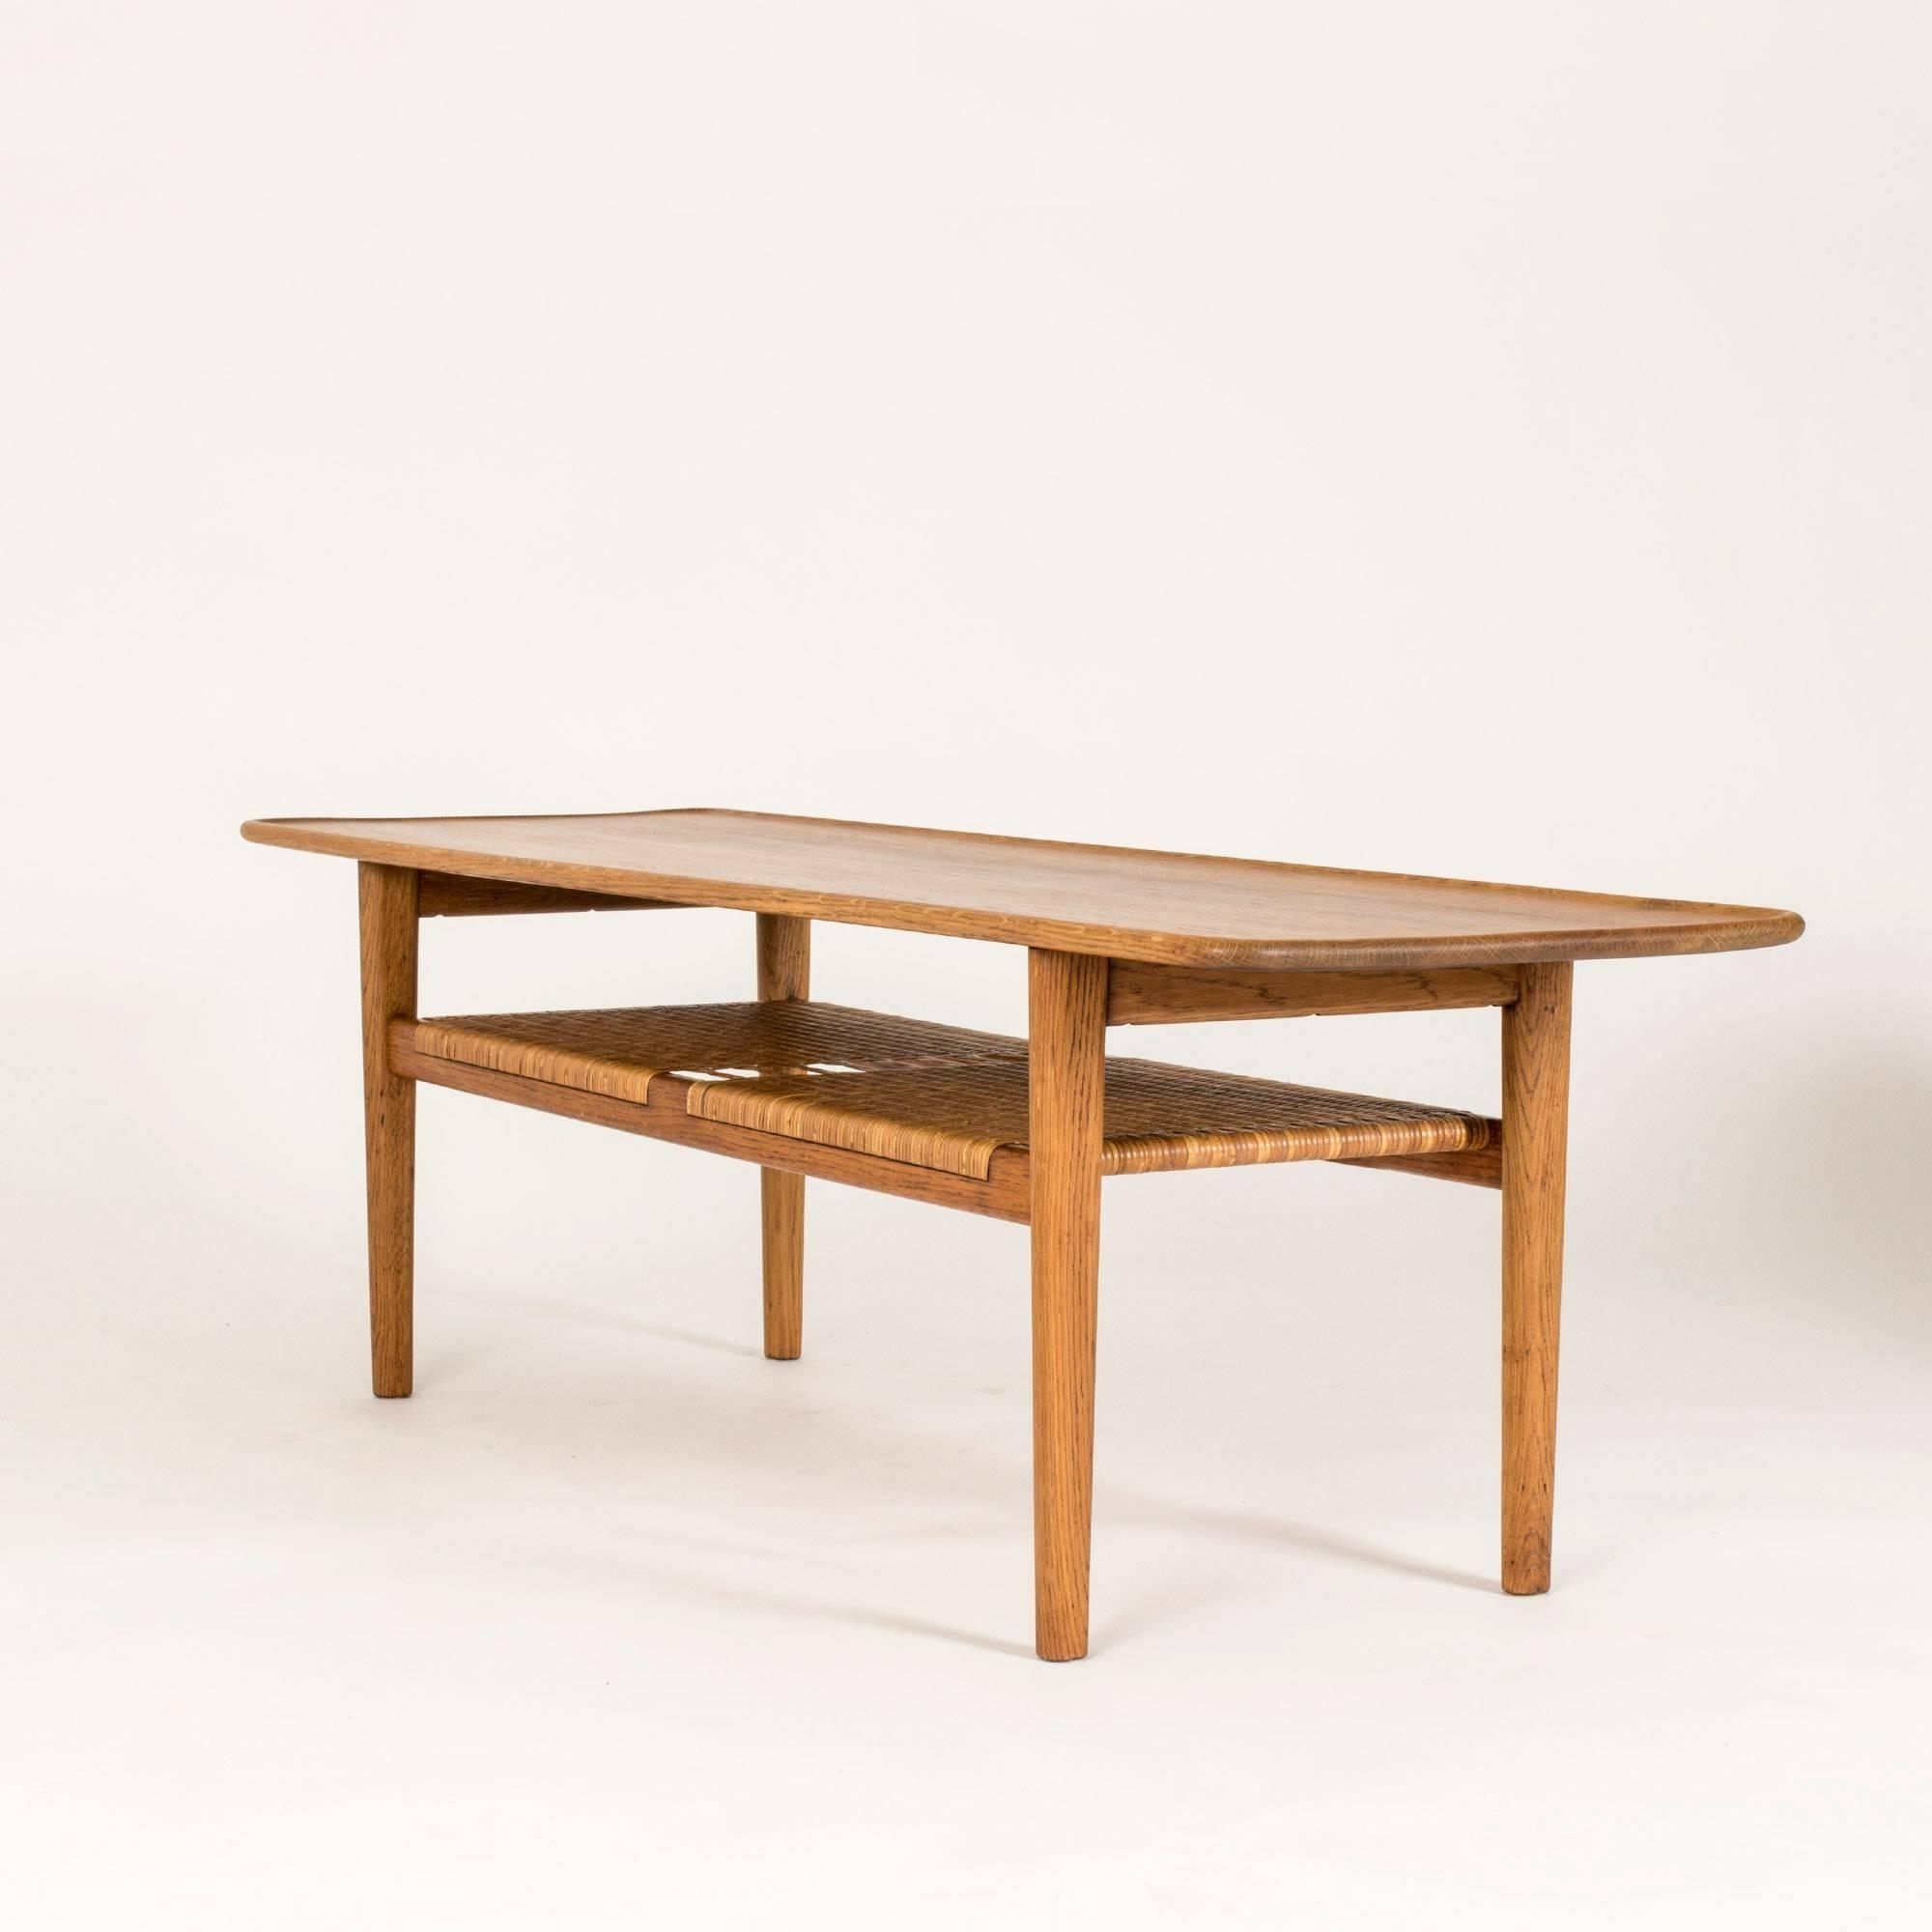 Widely Used Smoked Oak Coffee Tables With Regard To Smoked Oak And Rattan Coffee Tablehans J (View 19 of 20)